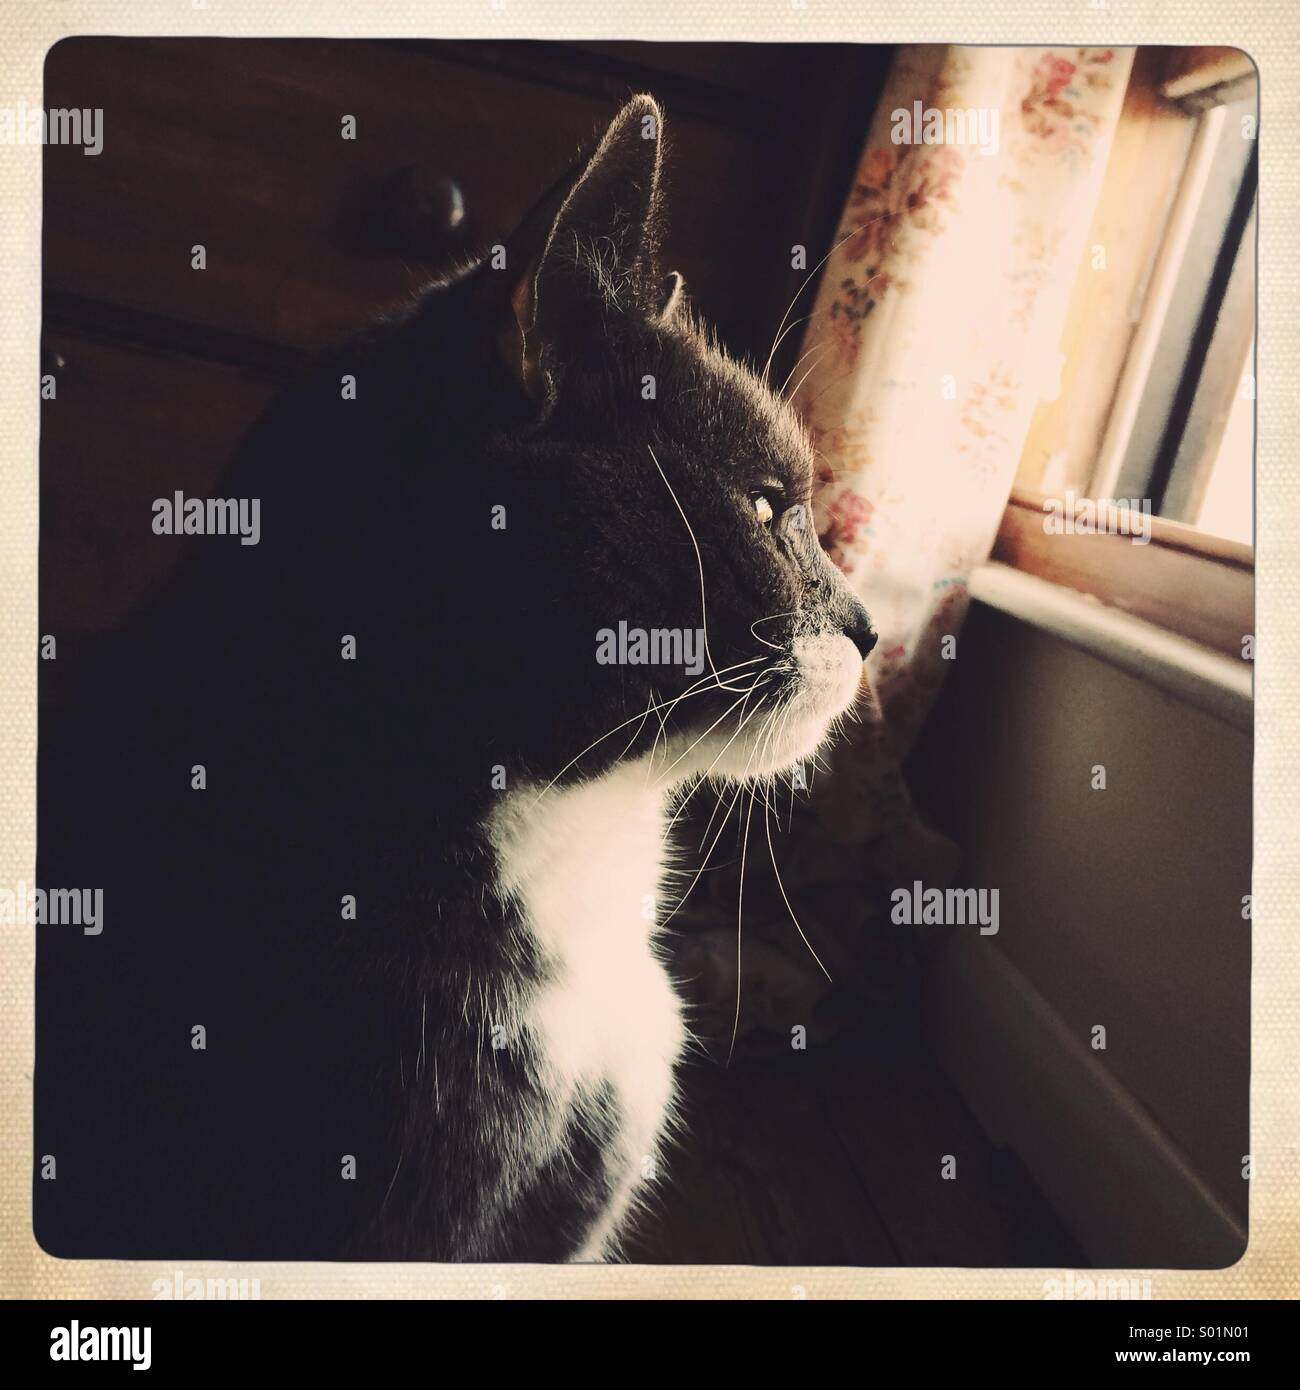 Grey cat looking out of a window - Stock Image